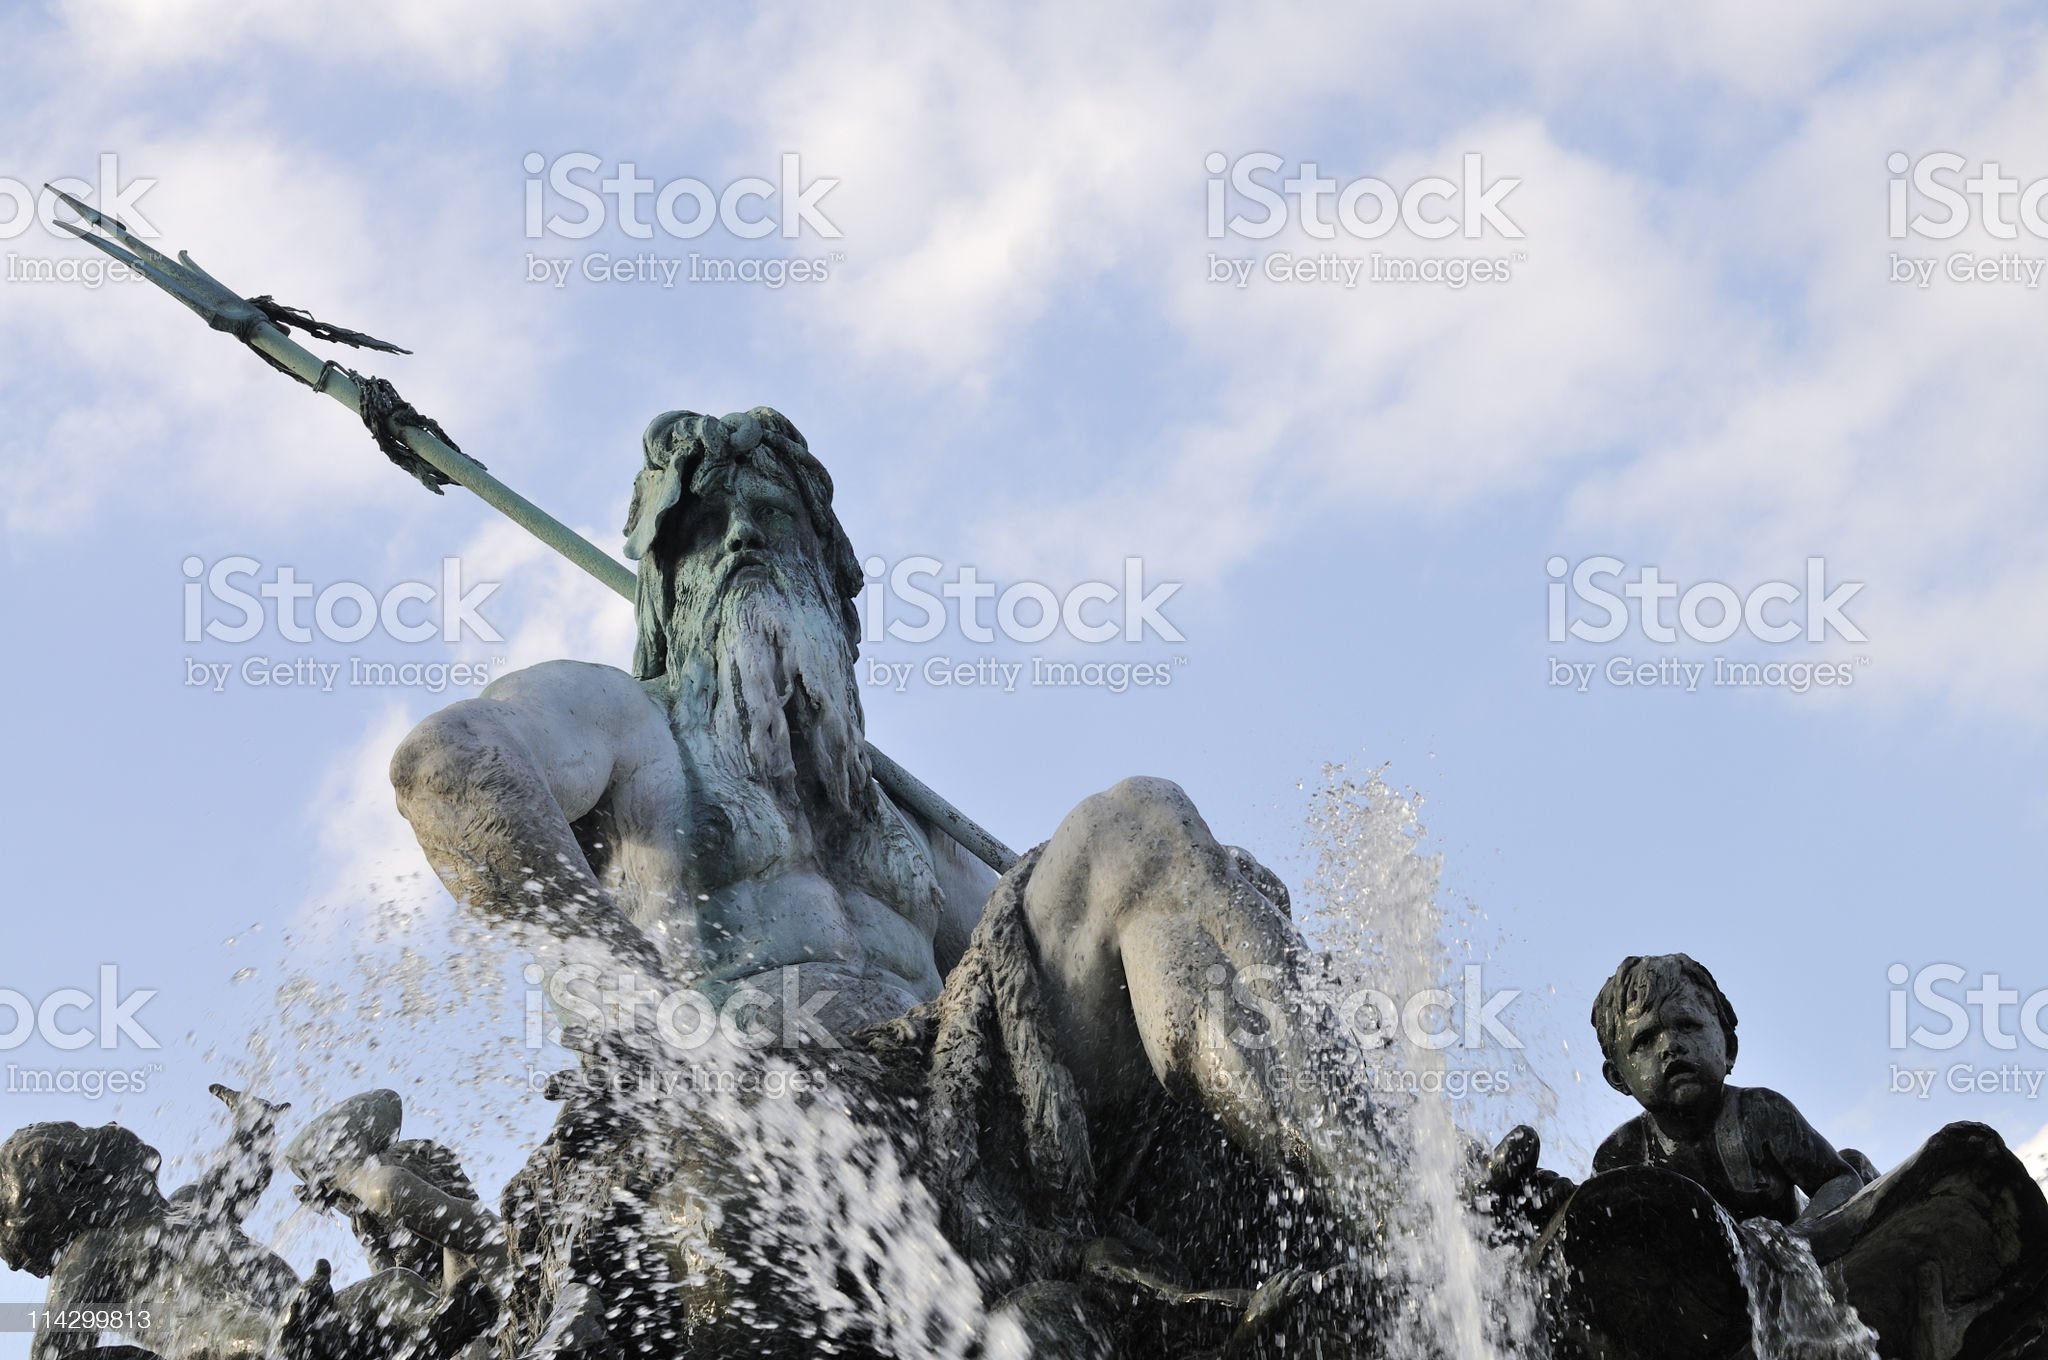 Neptun fountain, Berlin, Germany royalty-free stock photo